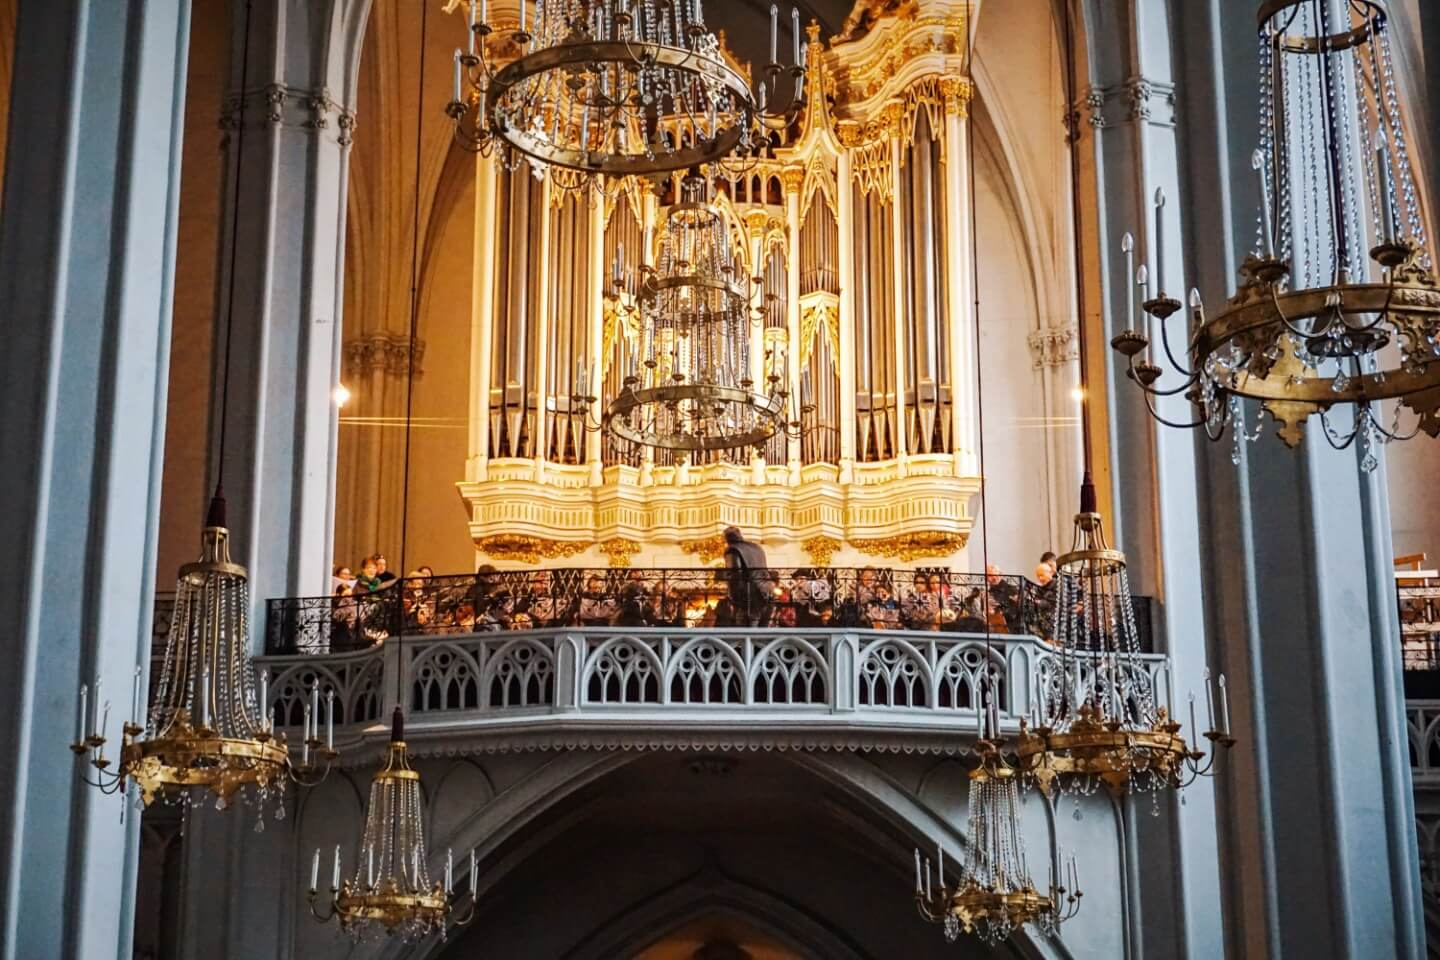 Augustinerkirche High Mass, Top Hidden Gems in Vienna